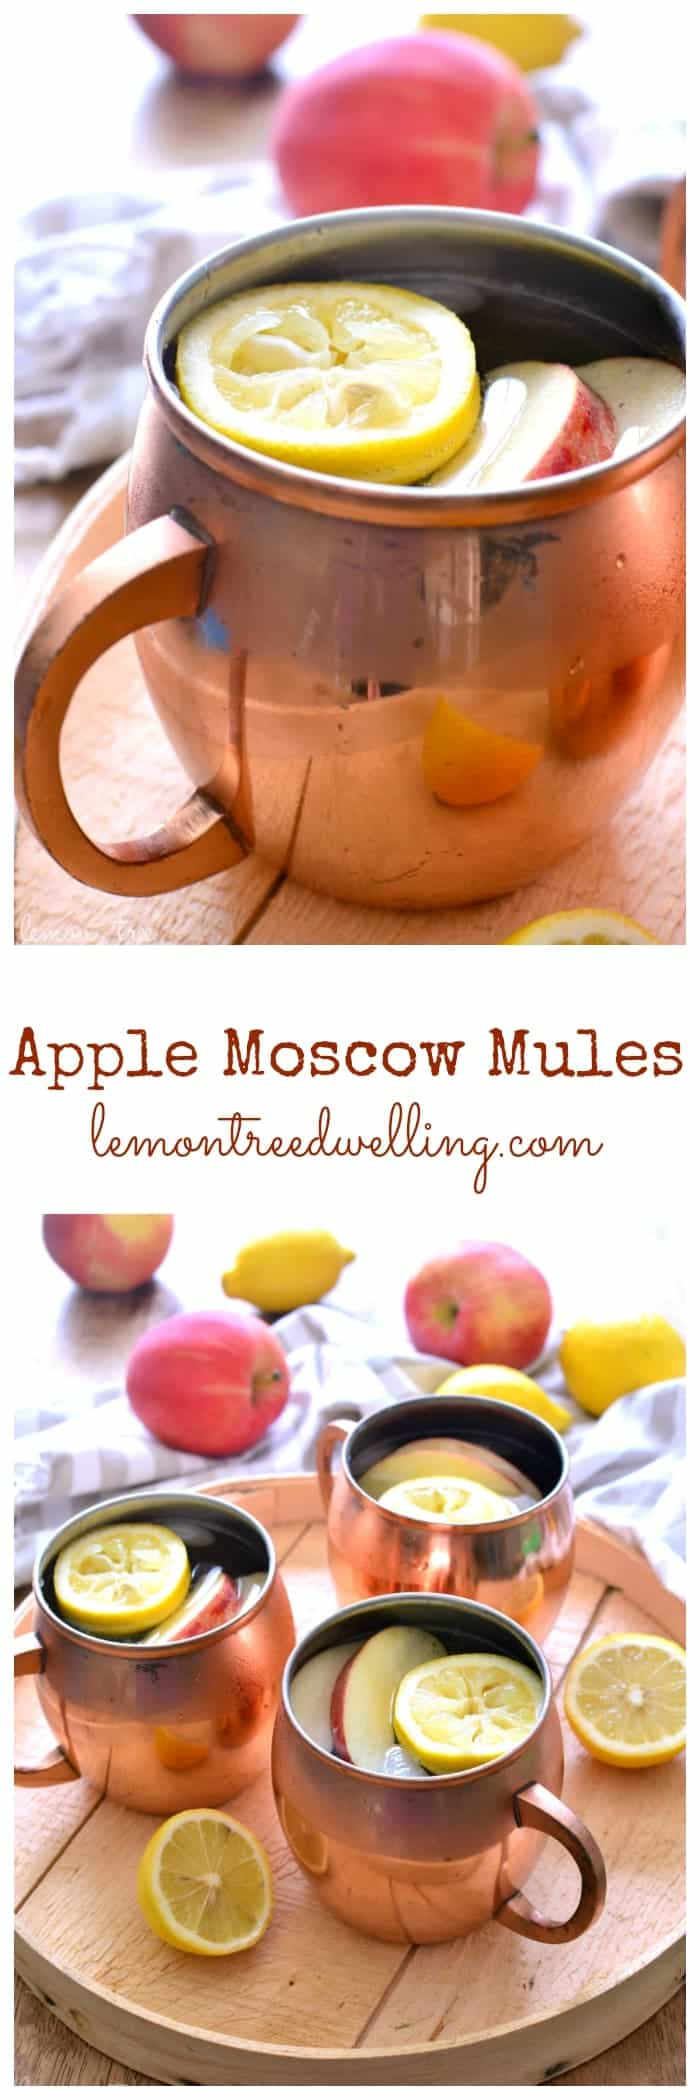 Apple Moscow Mules are a refreshing twist on the original, and perfect for fall!